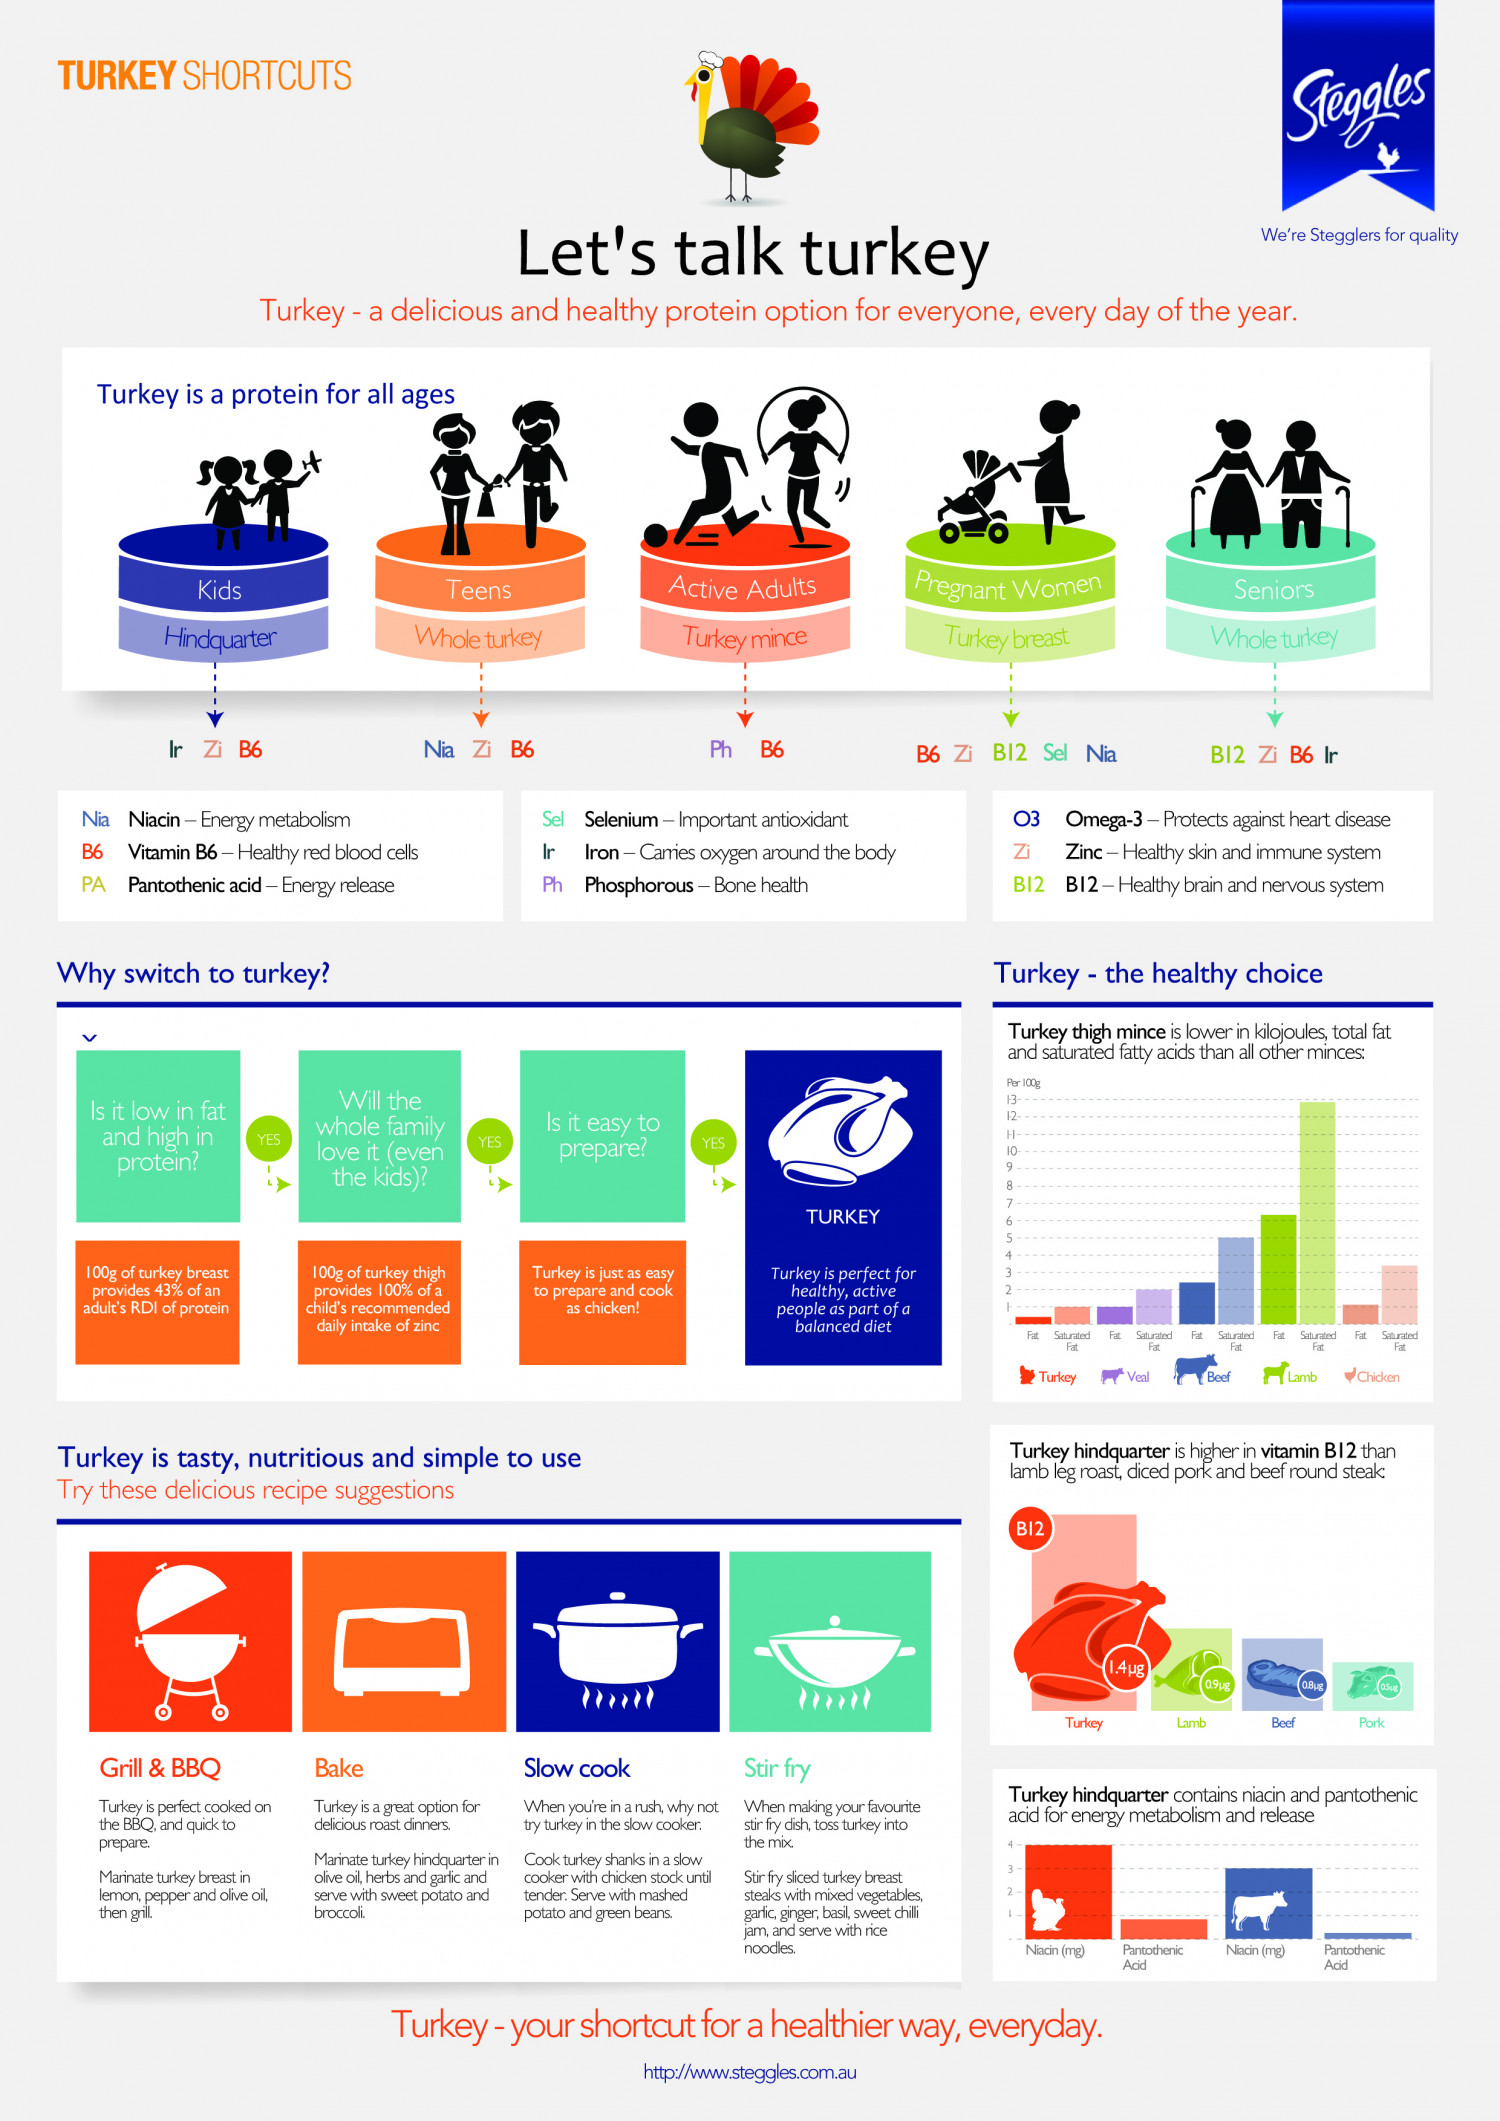 Steggles - Let's Talk Turkey Infographic